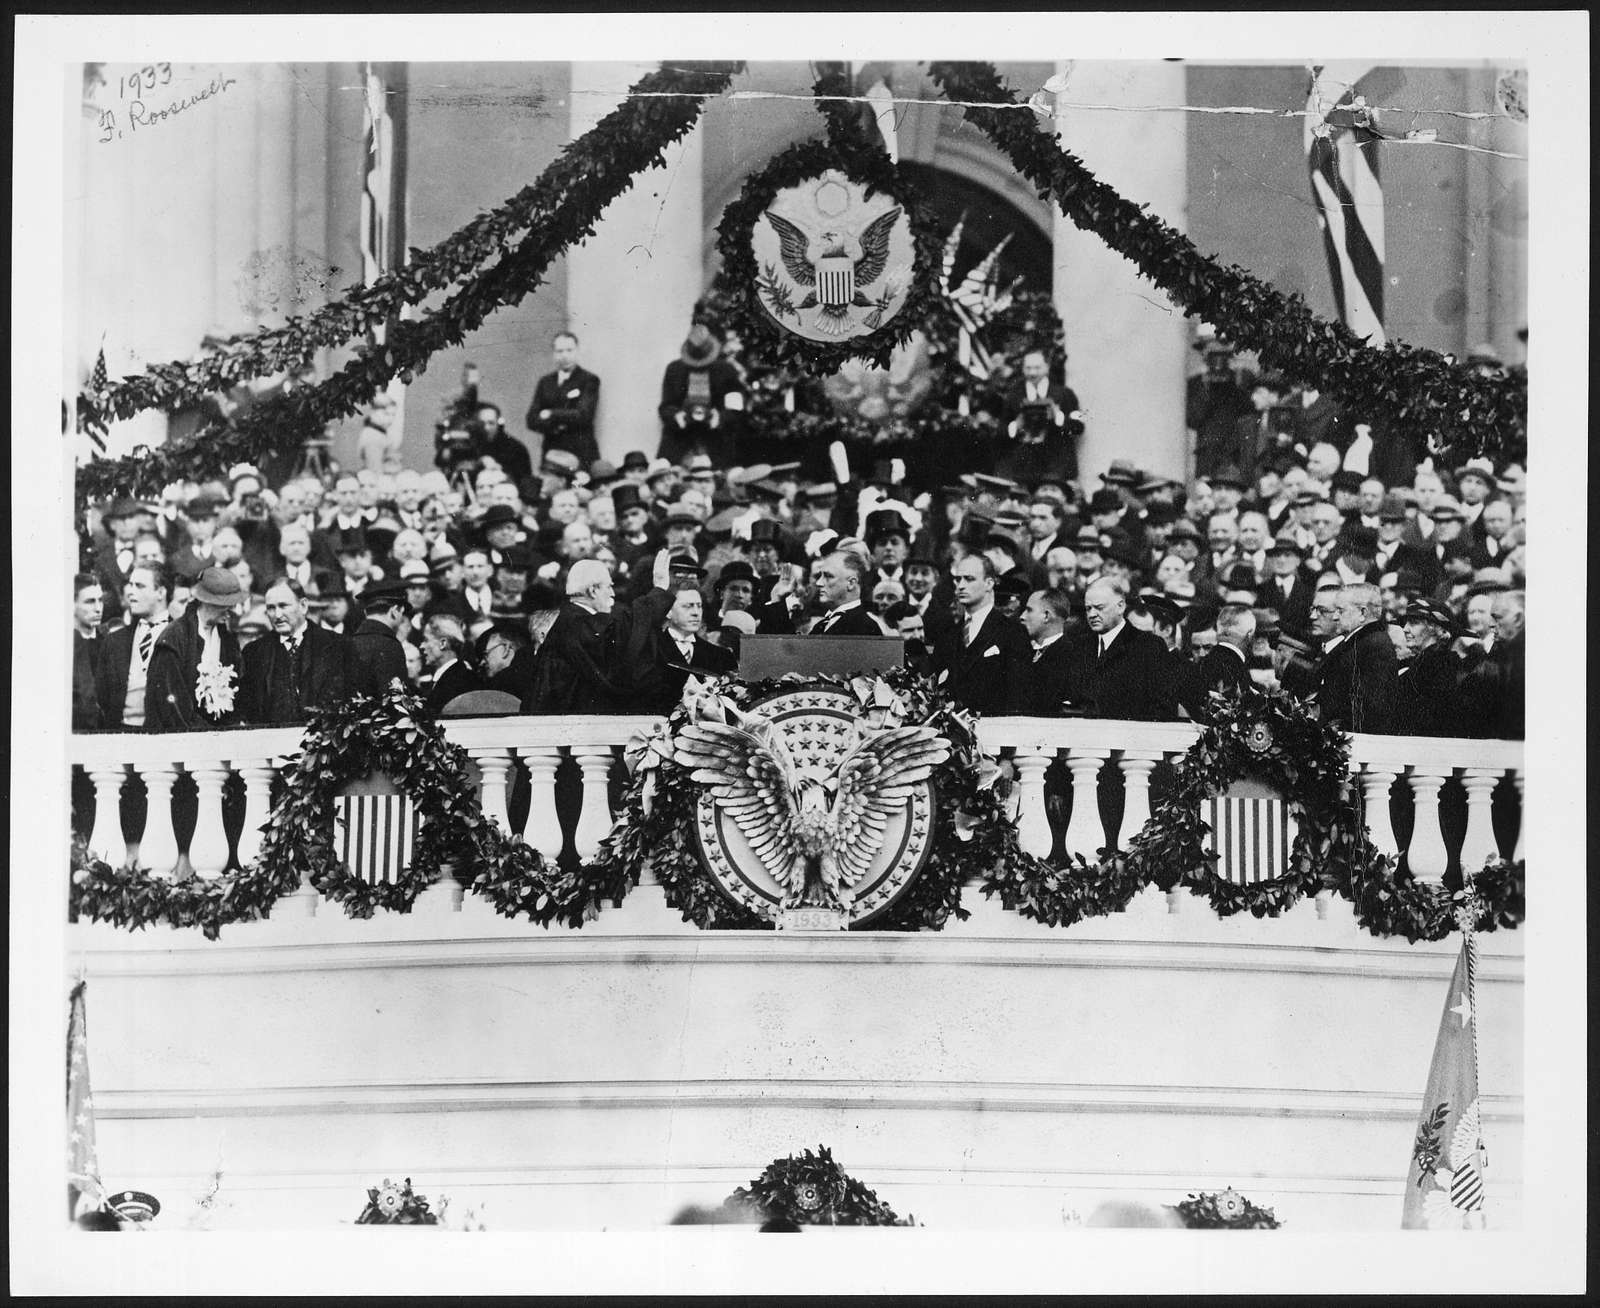 Chief Justice Charles Evans Hughes administering the oath of office to Franklin Delano Roosevelt on the east portico of the U.S. Capitol, March 4, 1933